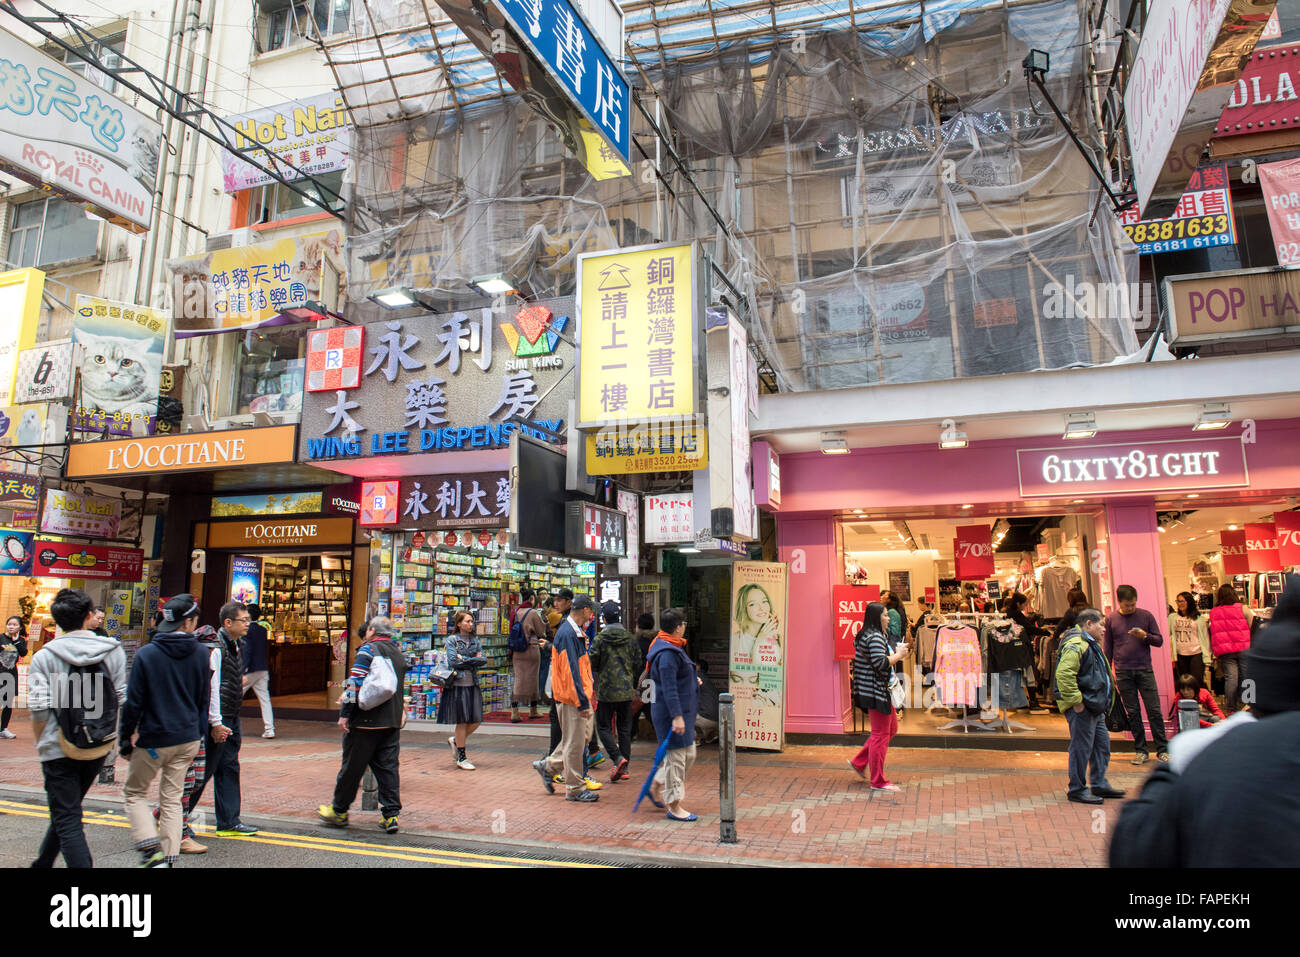 People shop in one of the busiest shopping areas in Hong Kong passing the entrance to the bookstore.The bookstore Stock Photo